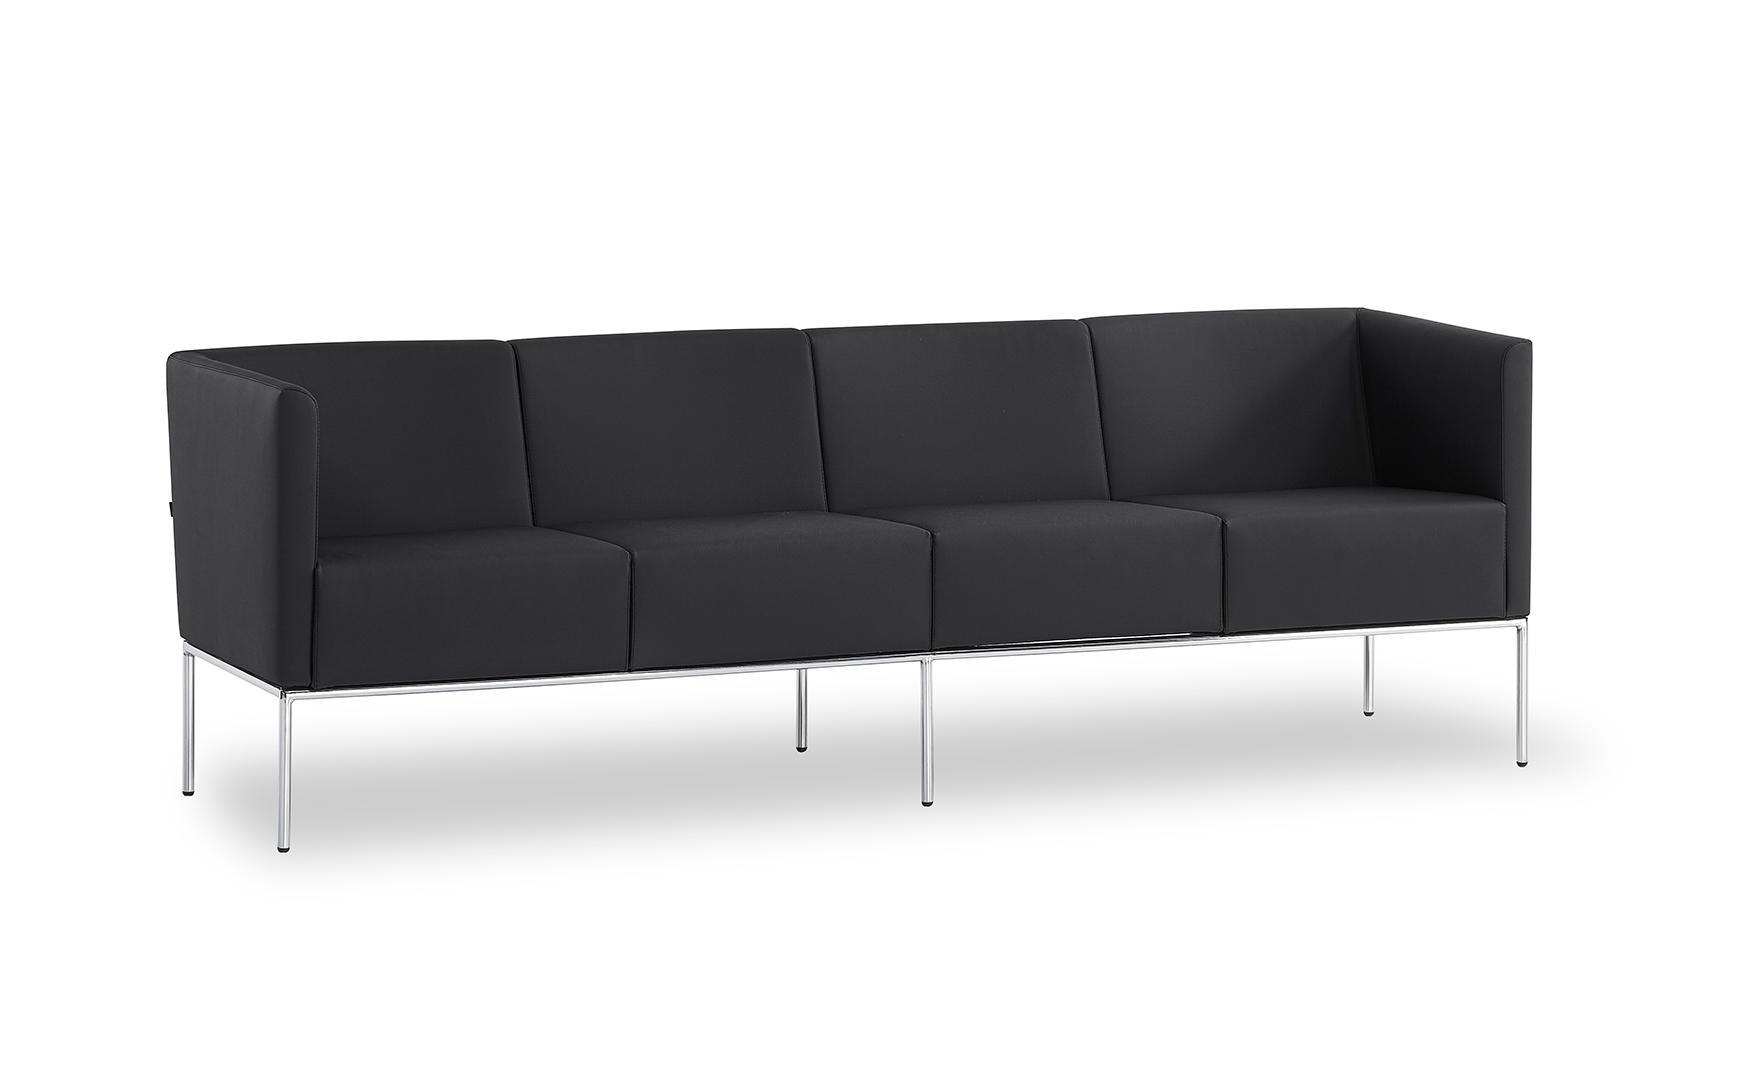 B&t Design | Products | Sofas | Tiny For Tiny Sofas (View 19 of 20)